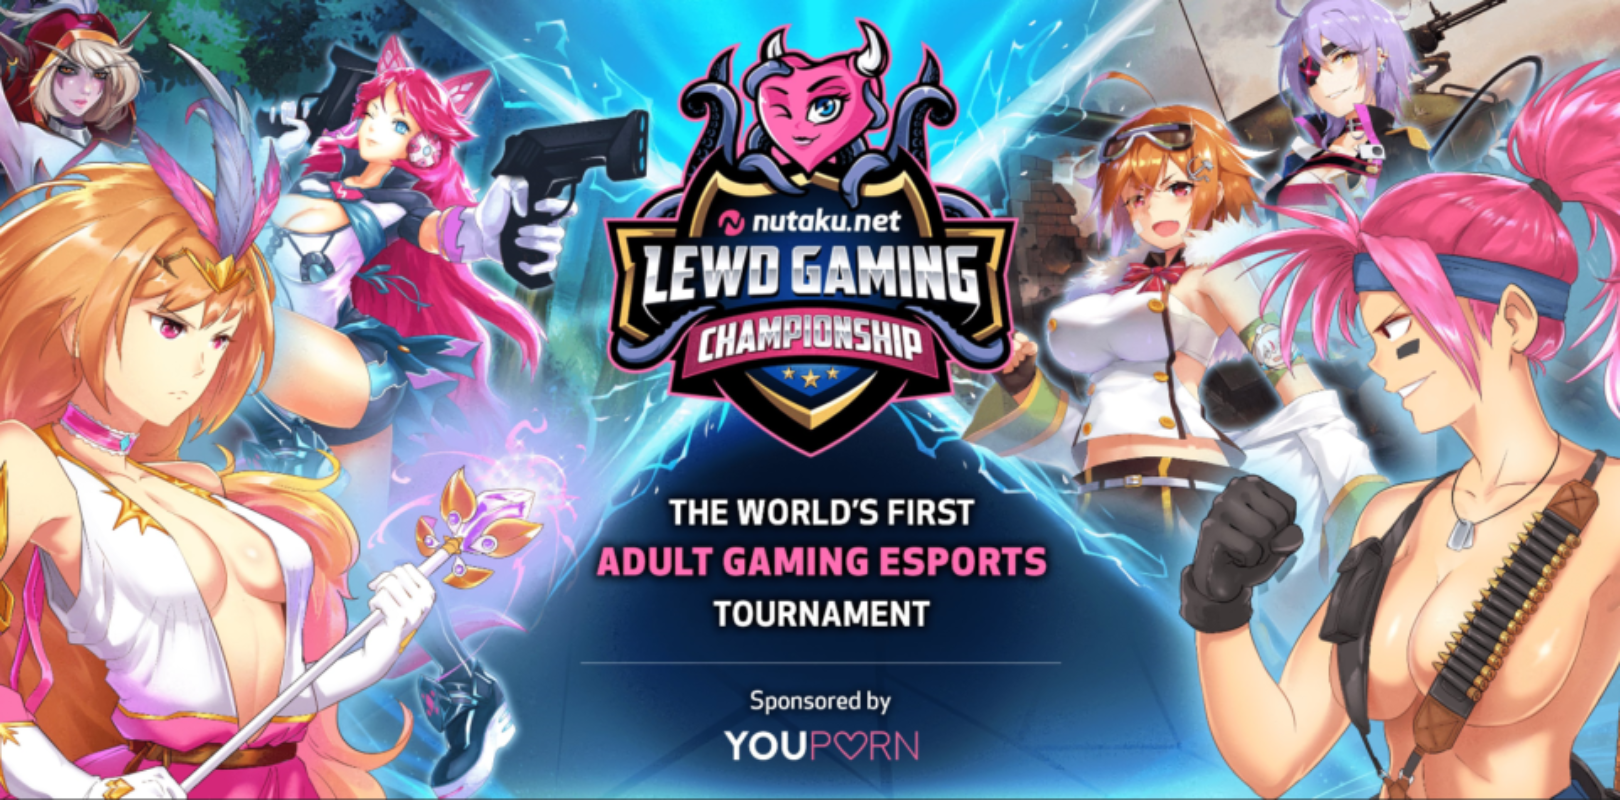 World's First Adult eSports Tournament is Launched by Nutaku